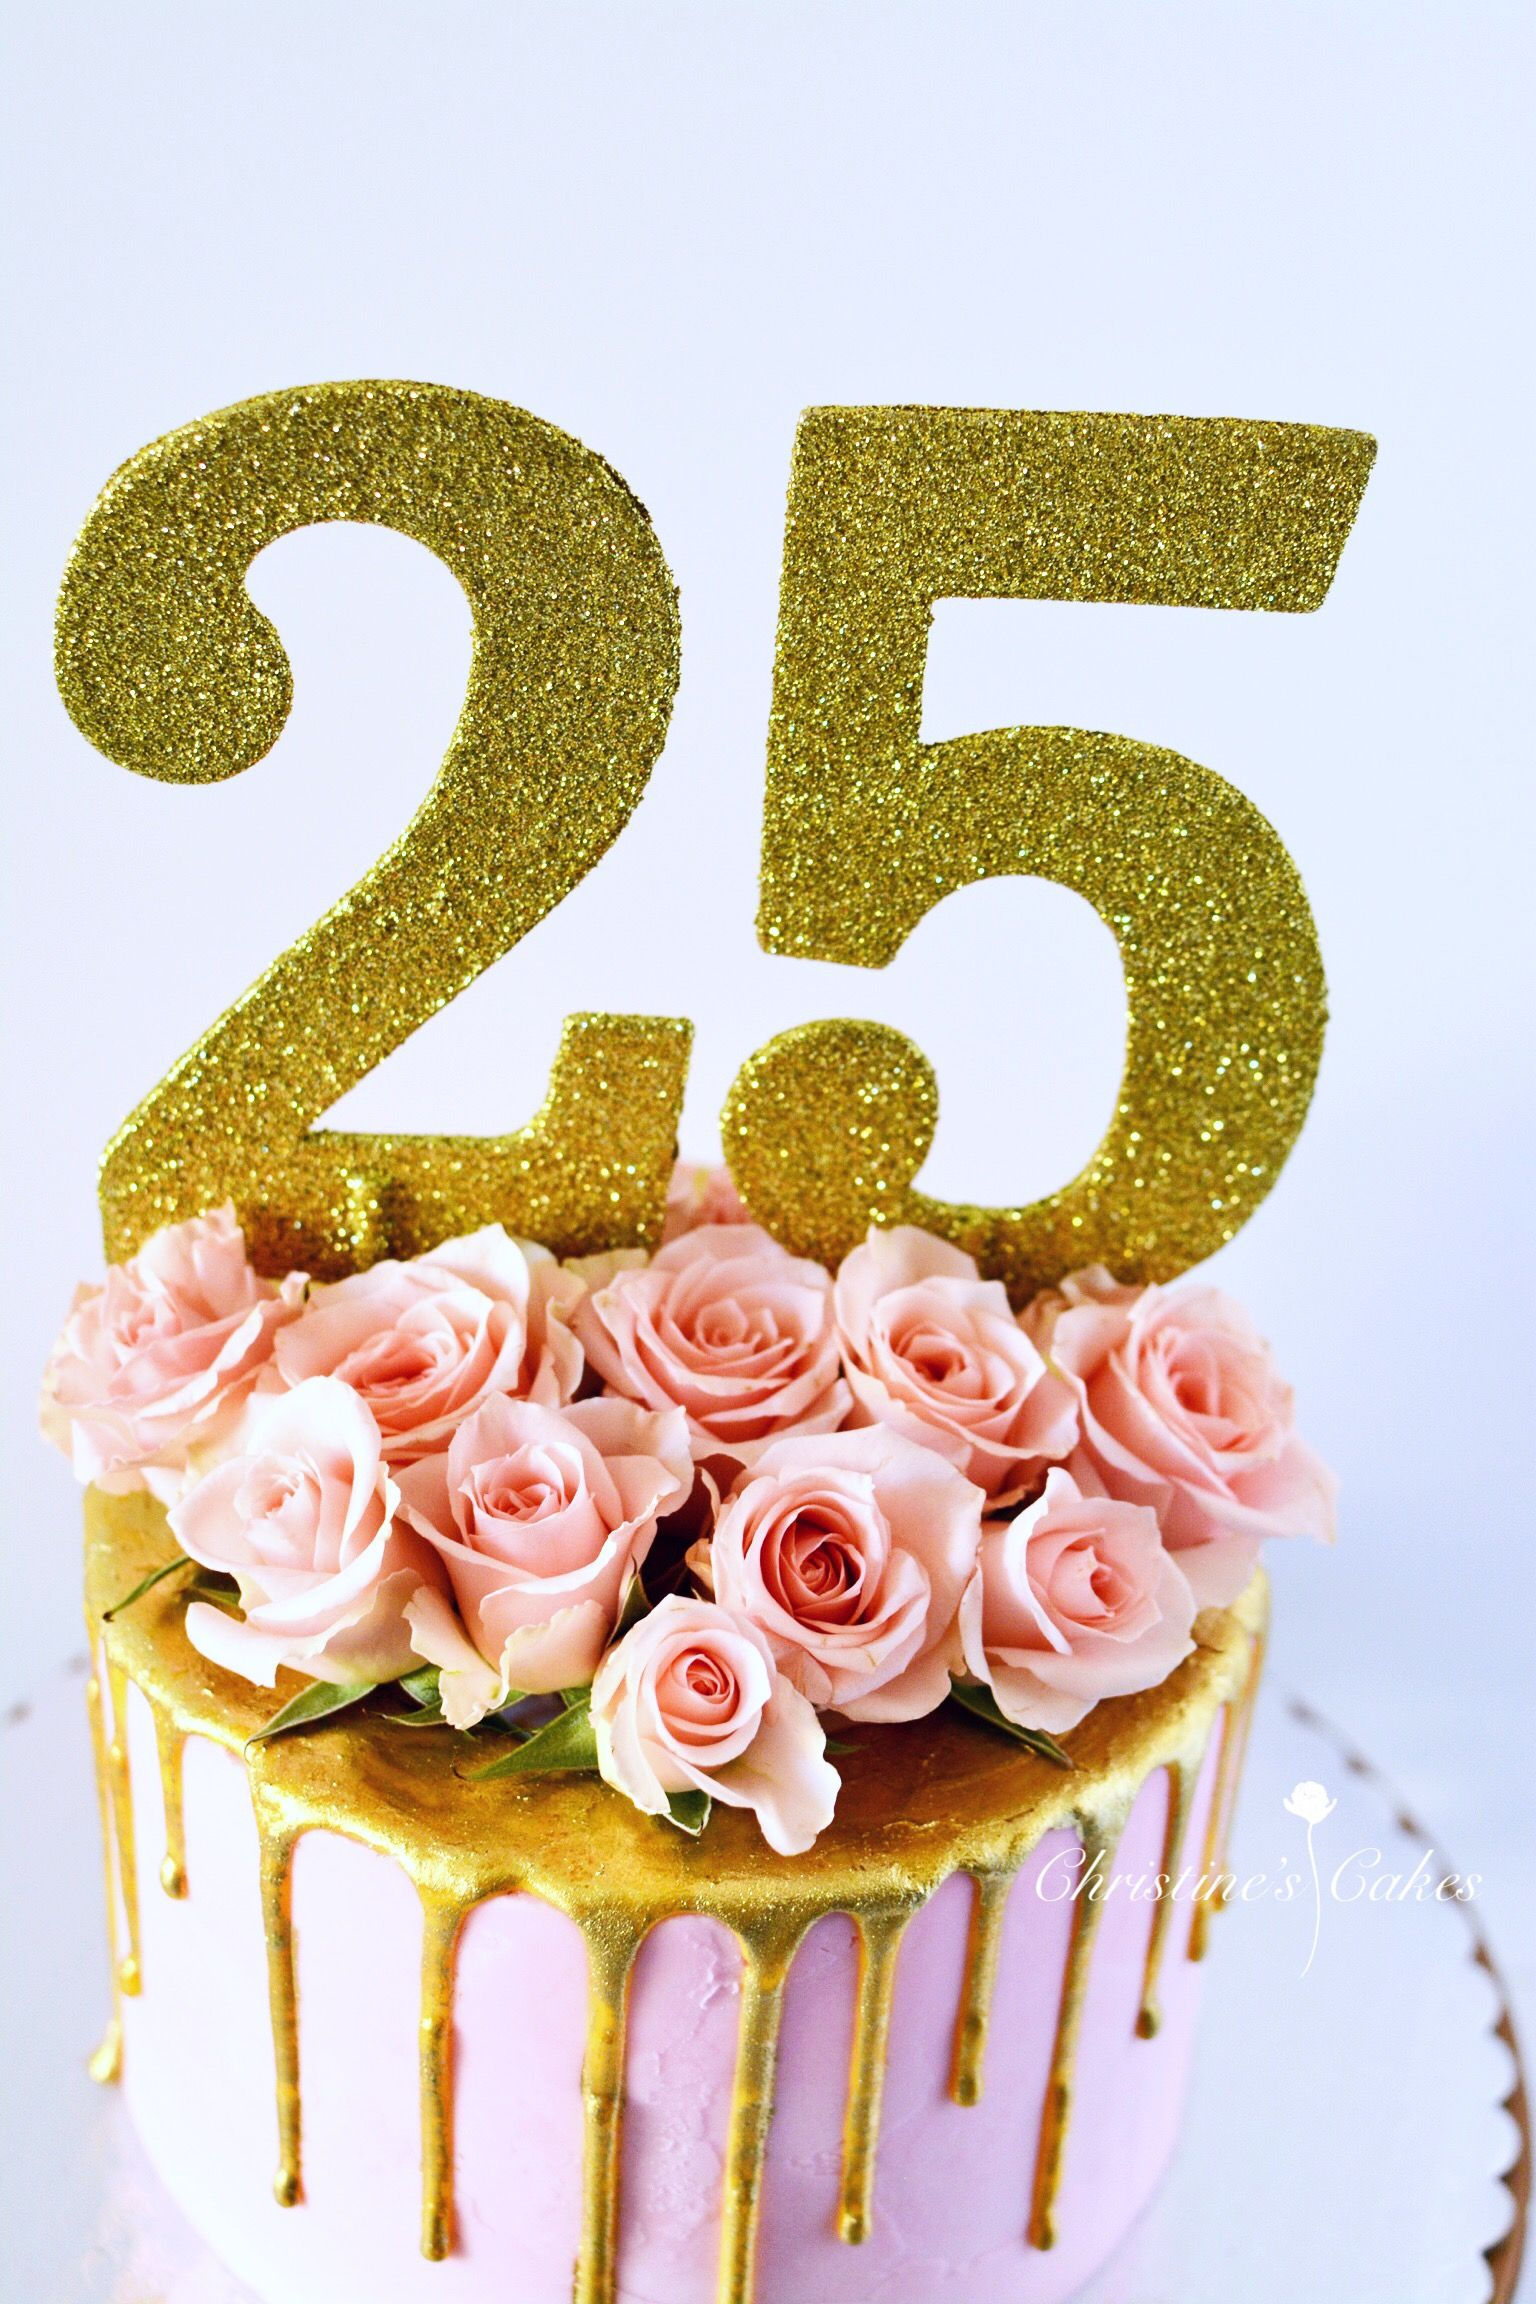 25th Birthday Birthday Cake Pink Spray Roses Floral Cake Gold